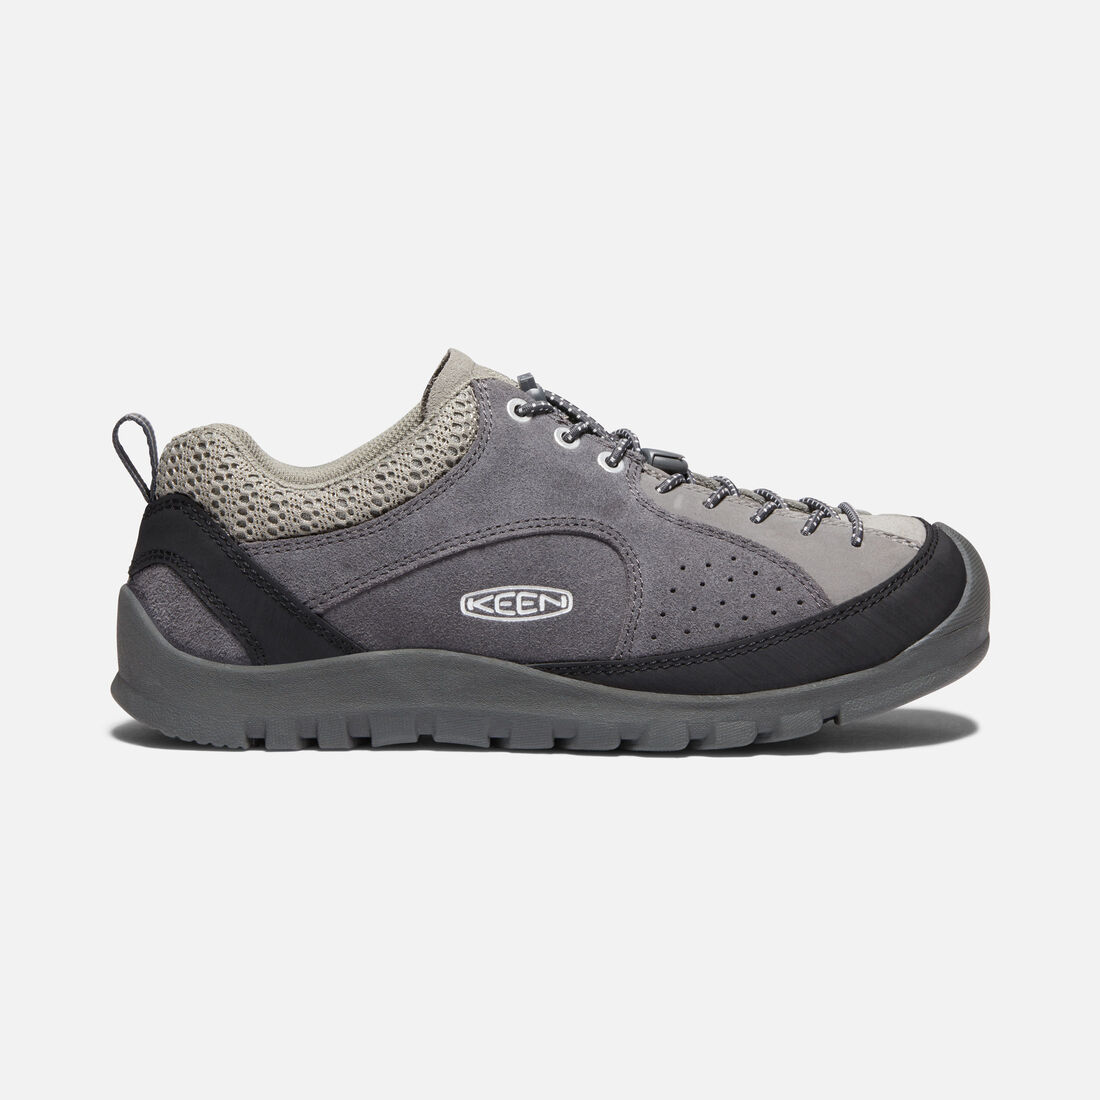 Men's Jasper Rocks SP in ASPHALT/MOON MIST - large view.